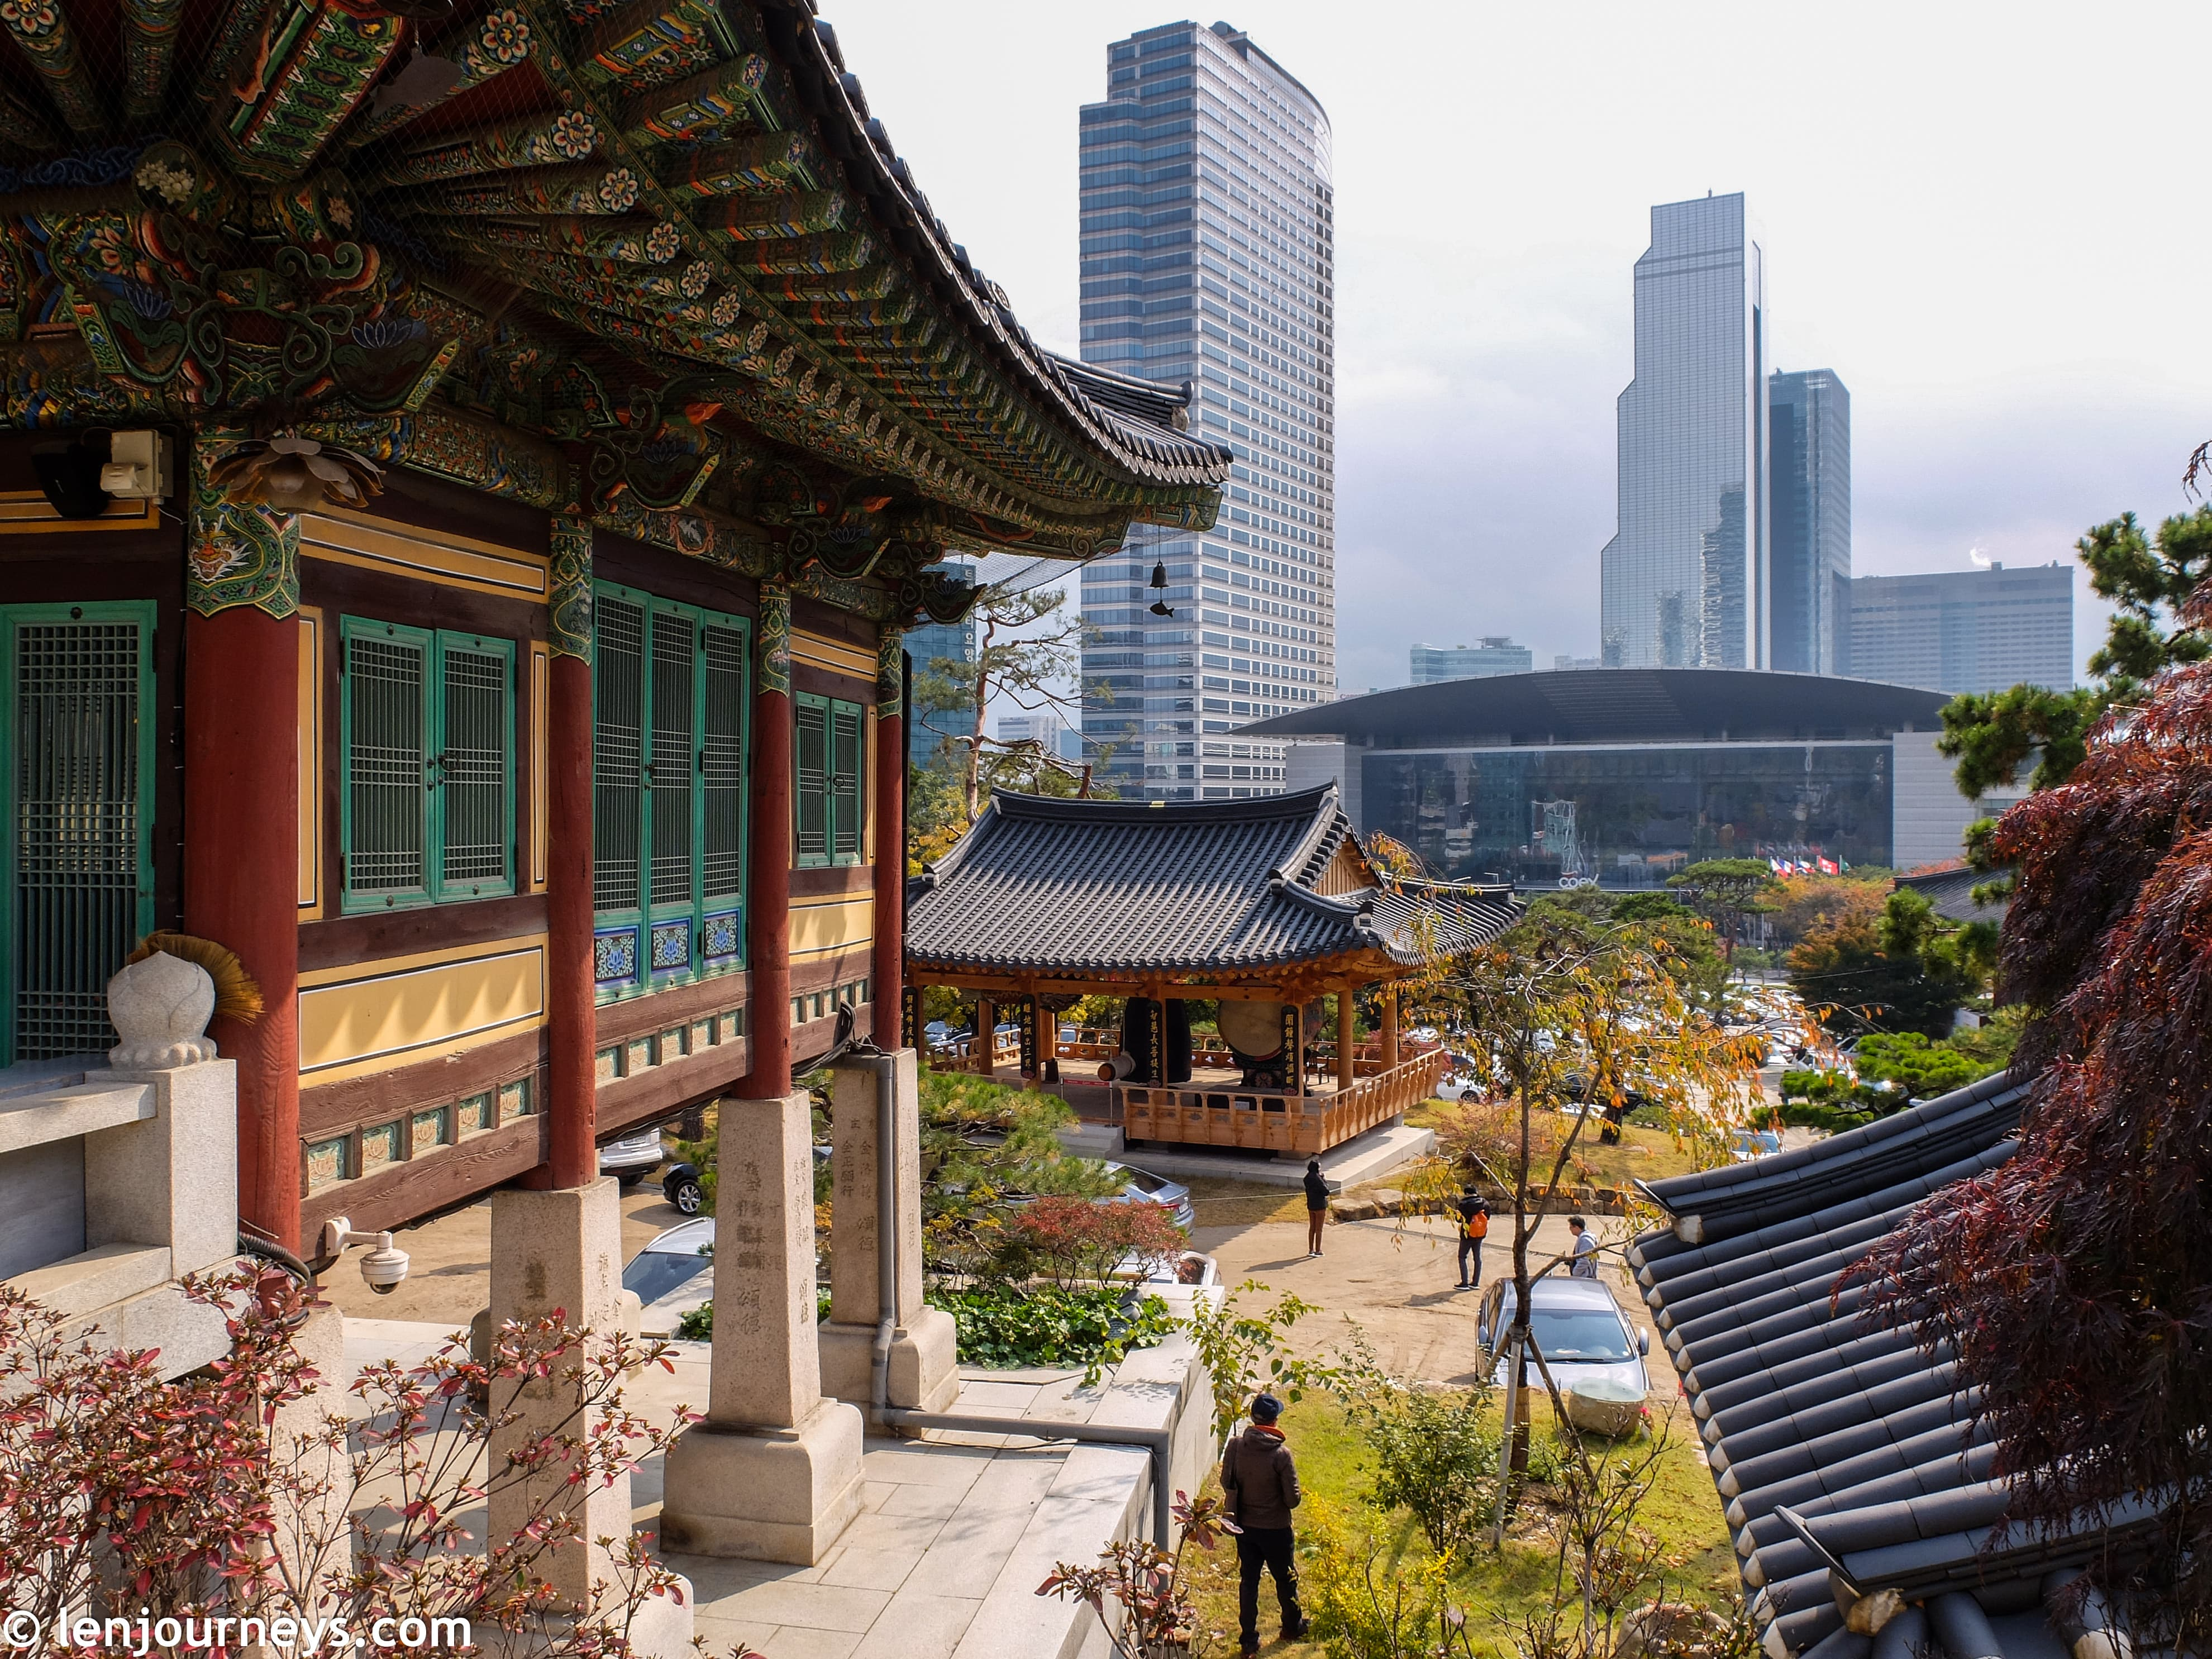 When old meets new in Gangnam